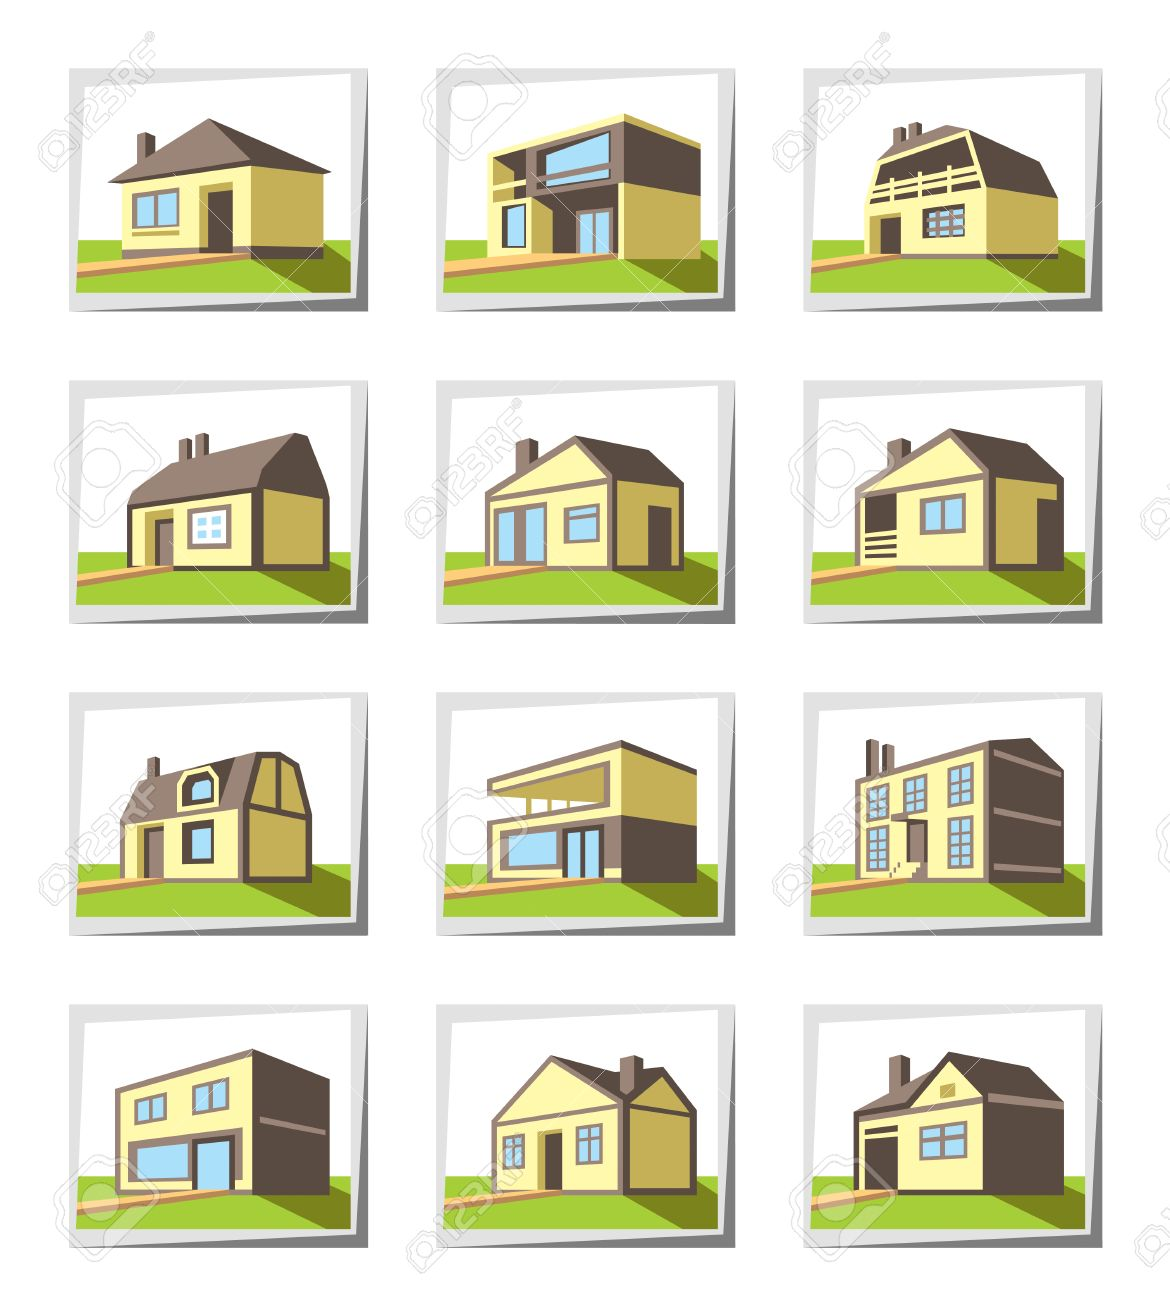 Types Of Homes Images